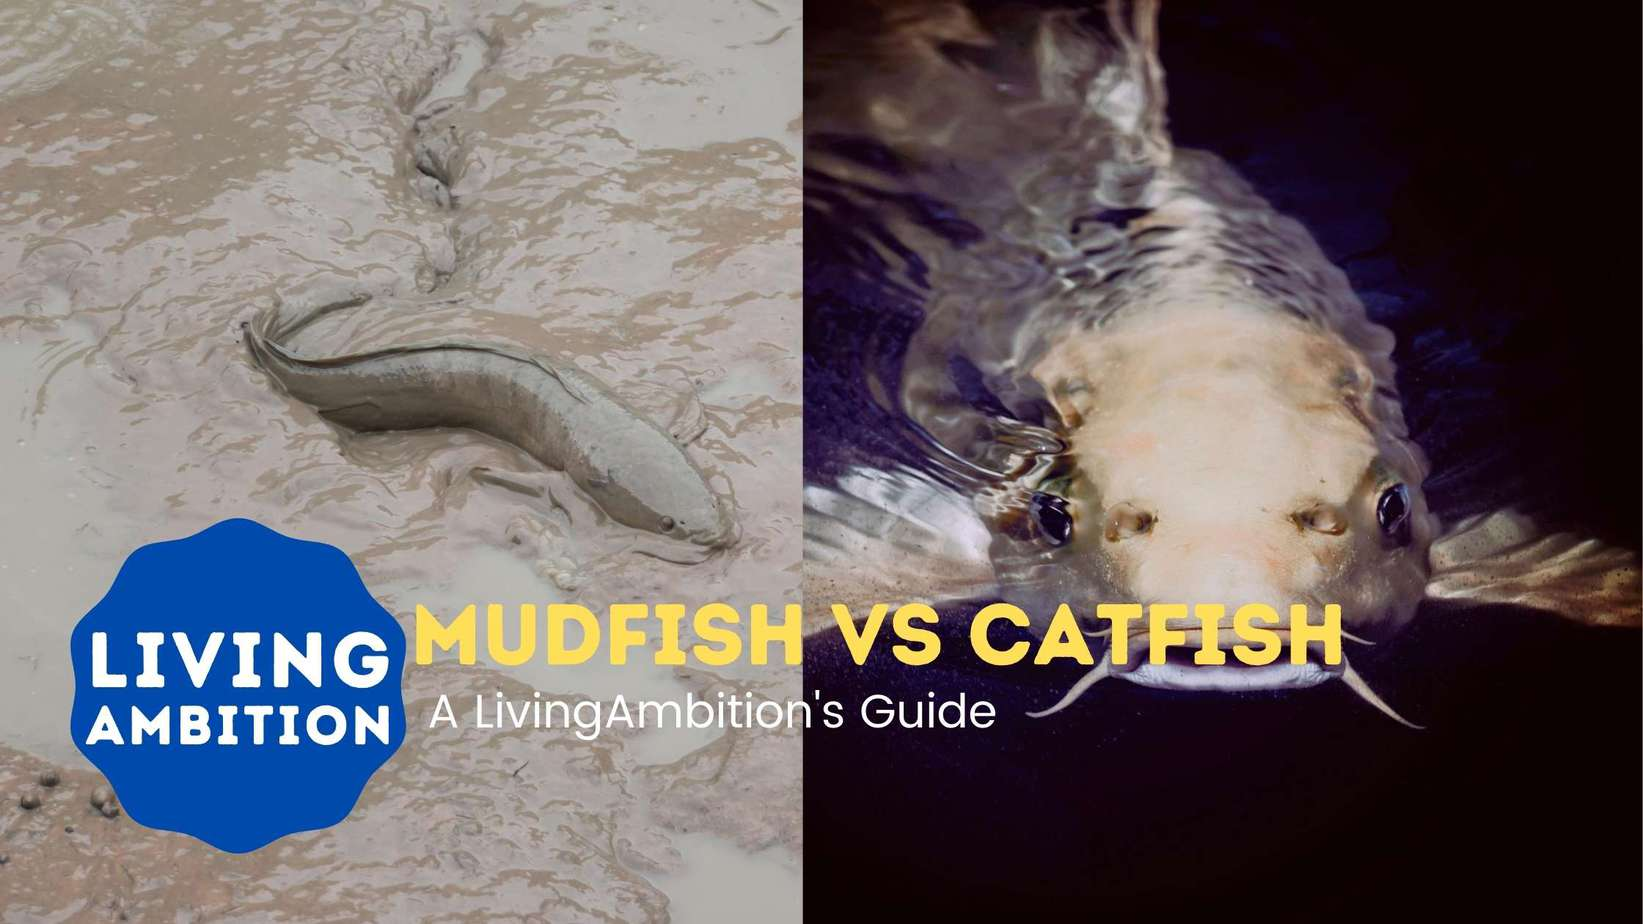 Difference between mudfish and catfish